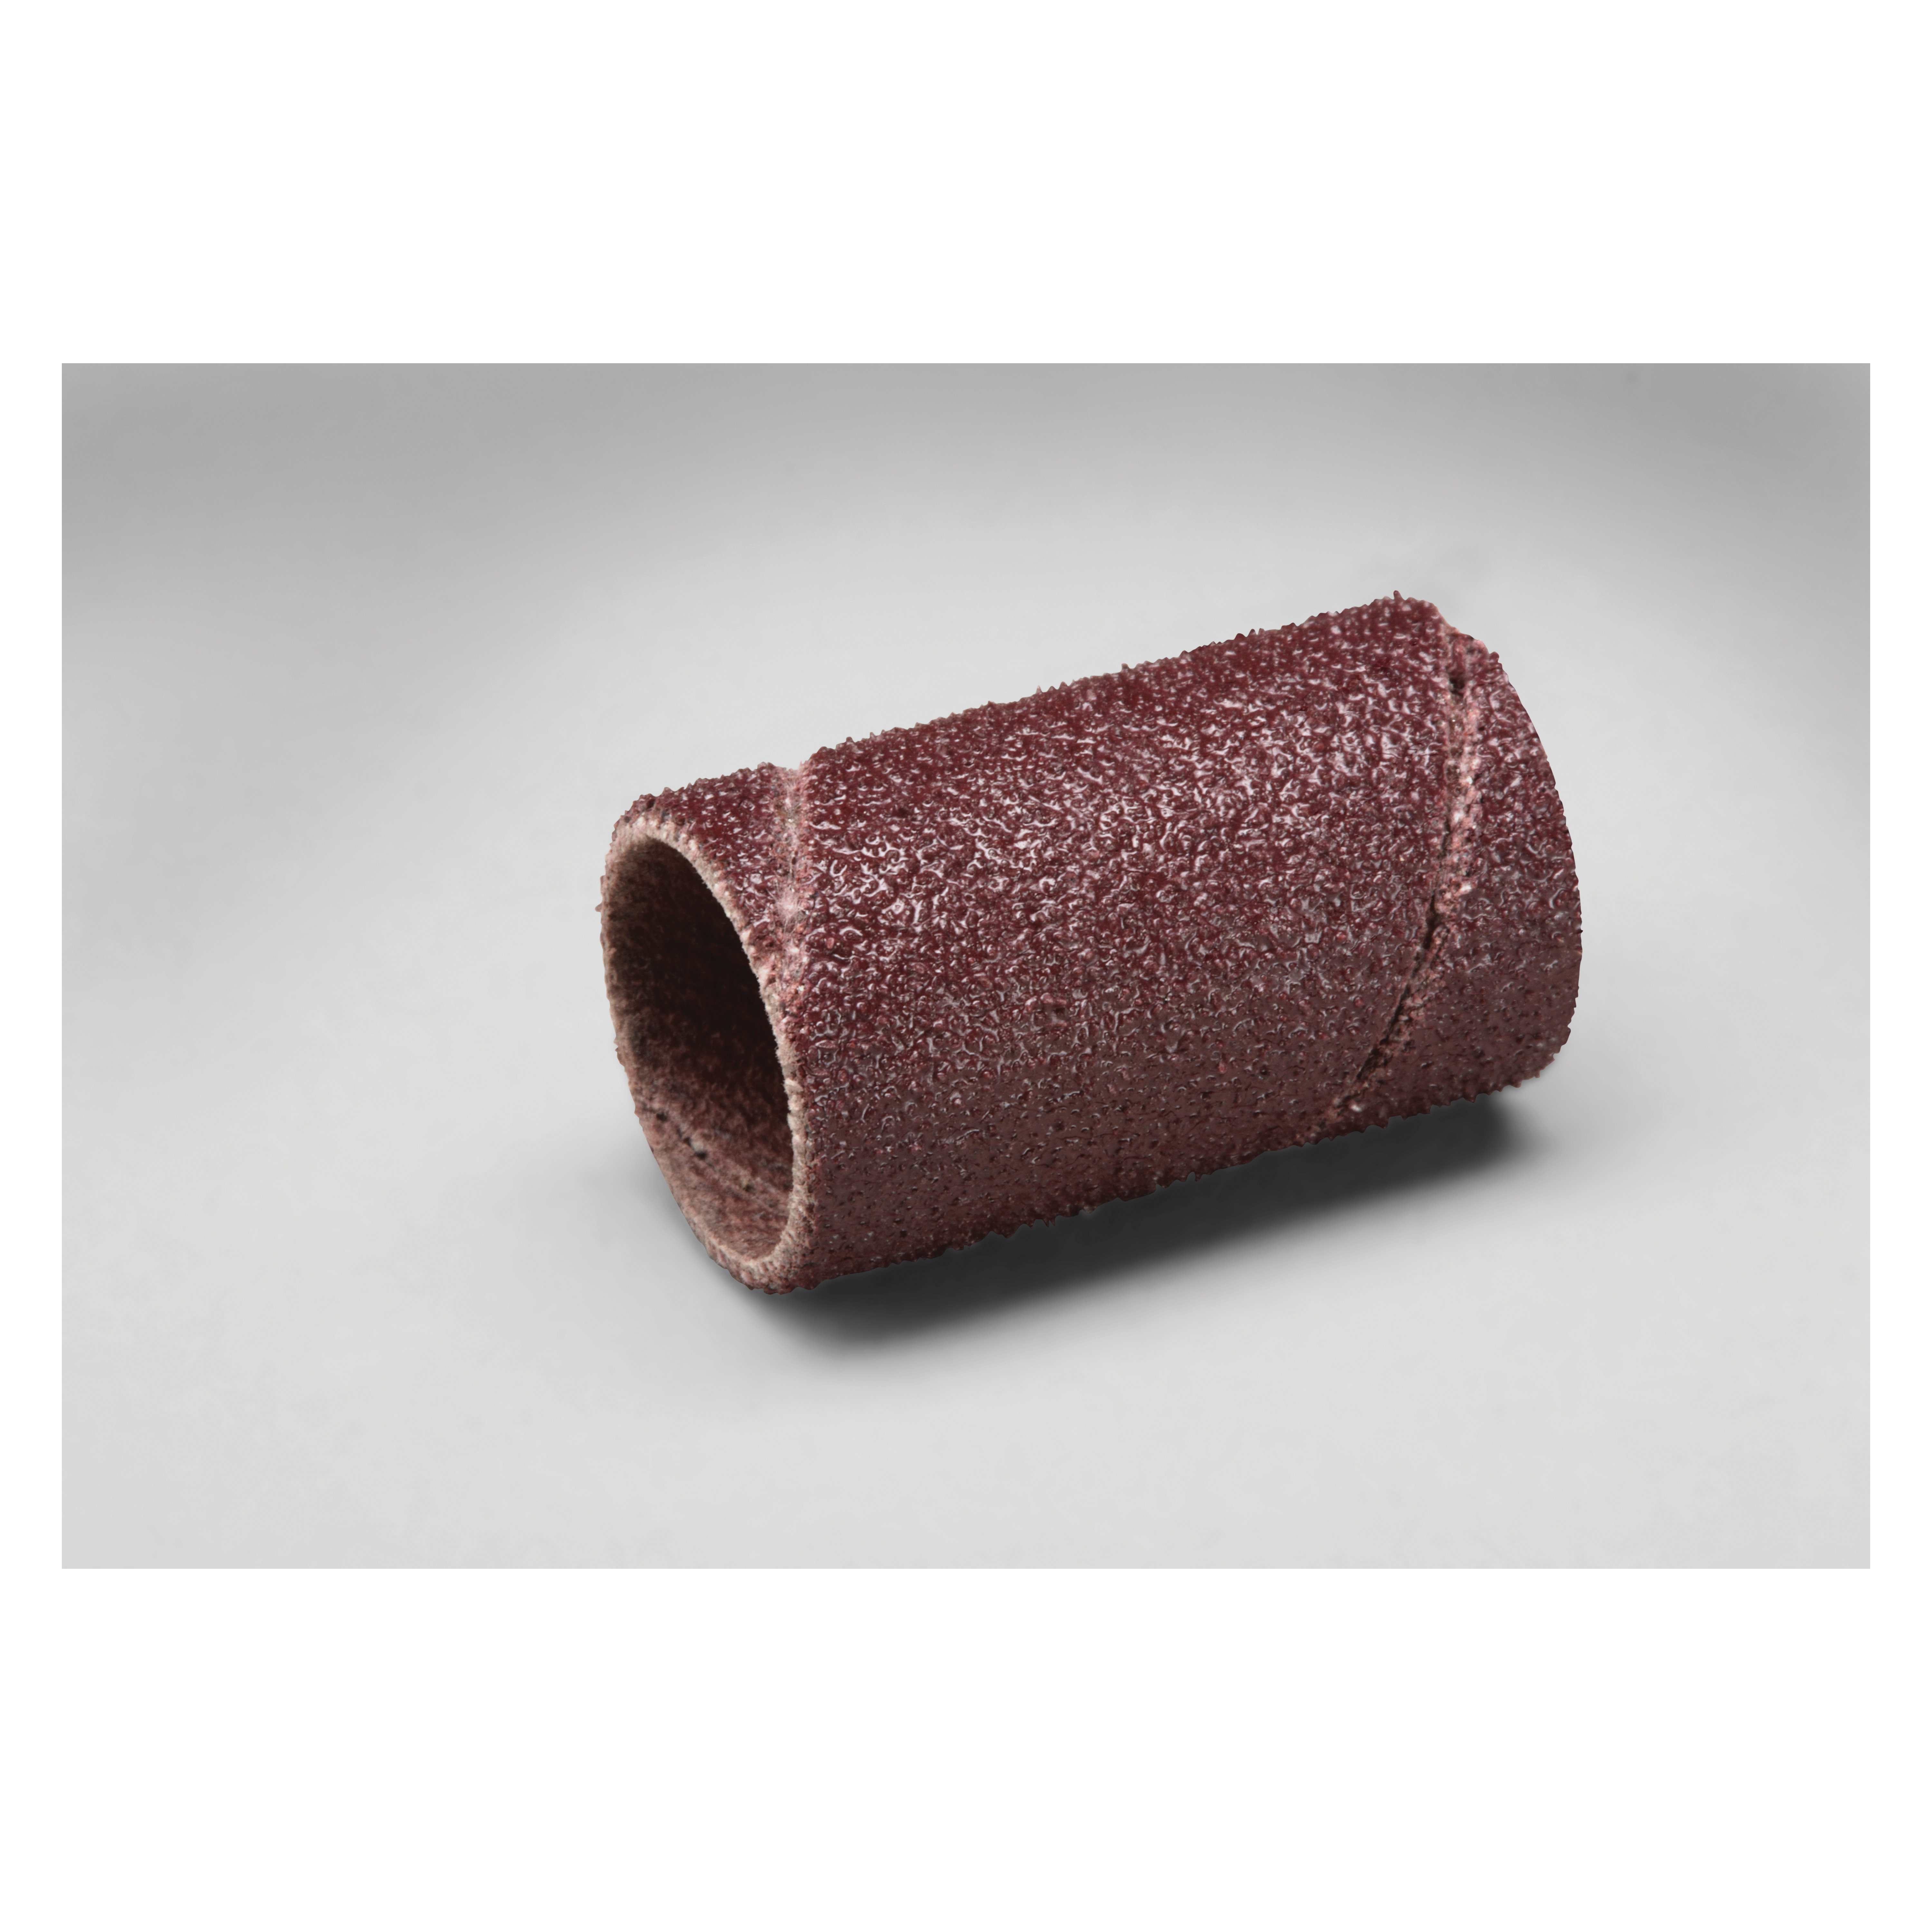 3M™ 051144-40223 341D Coated Spiral Band, 3/4 in Dia x 3/4 in L Band, 80 Grit, Medium Grade, Aluminum Oxide Abrasive